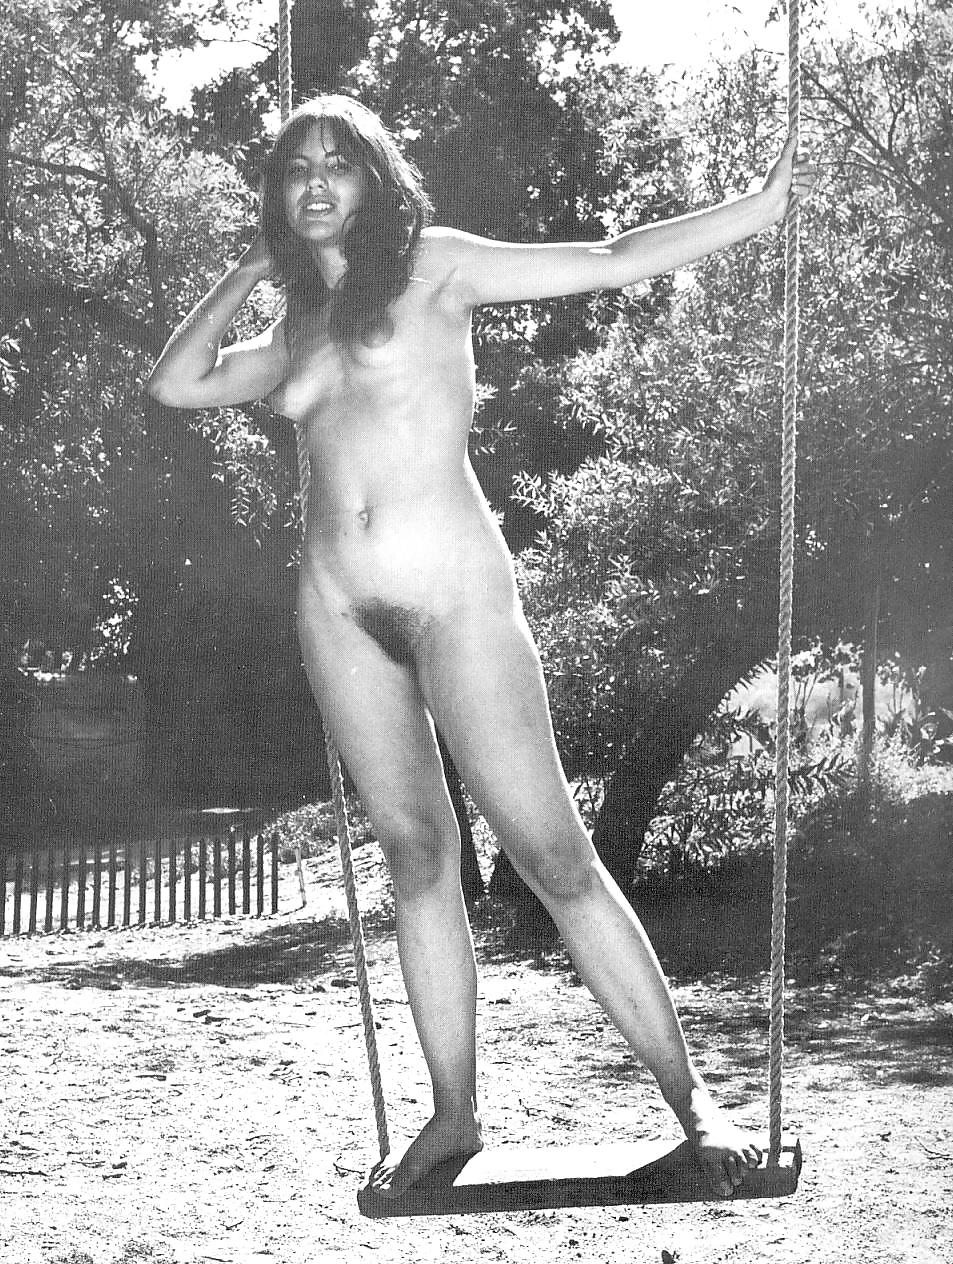 Question naturist nudist gallery archives understand